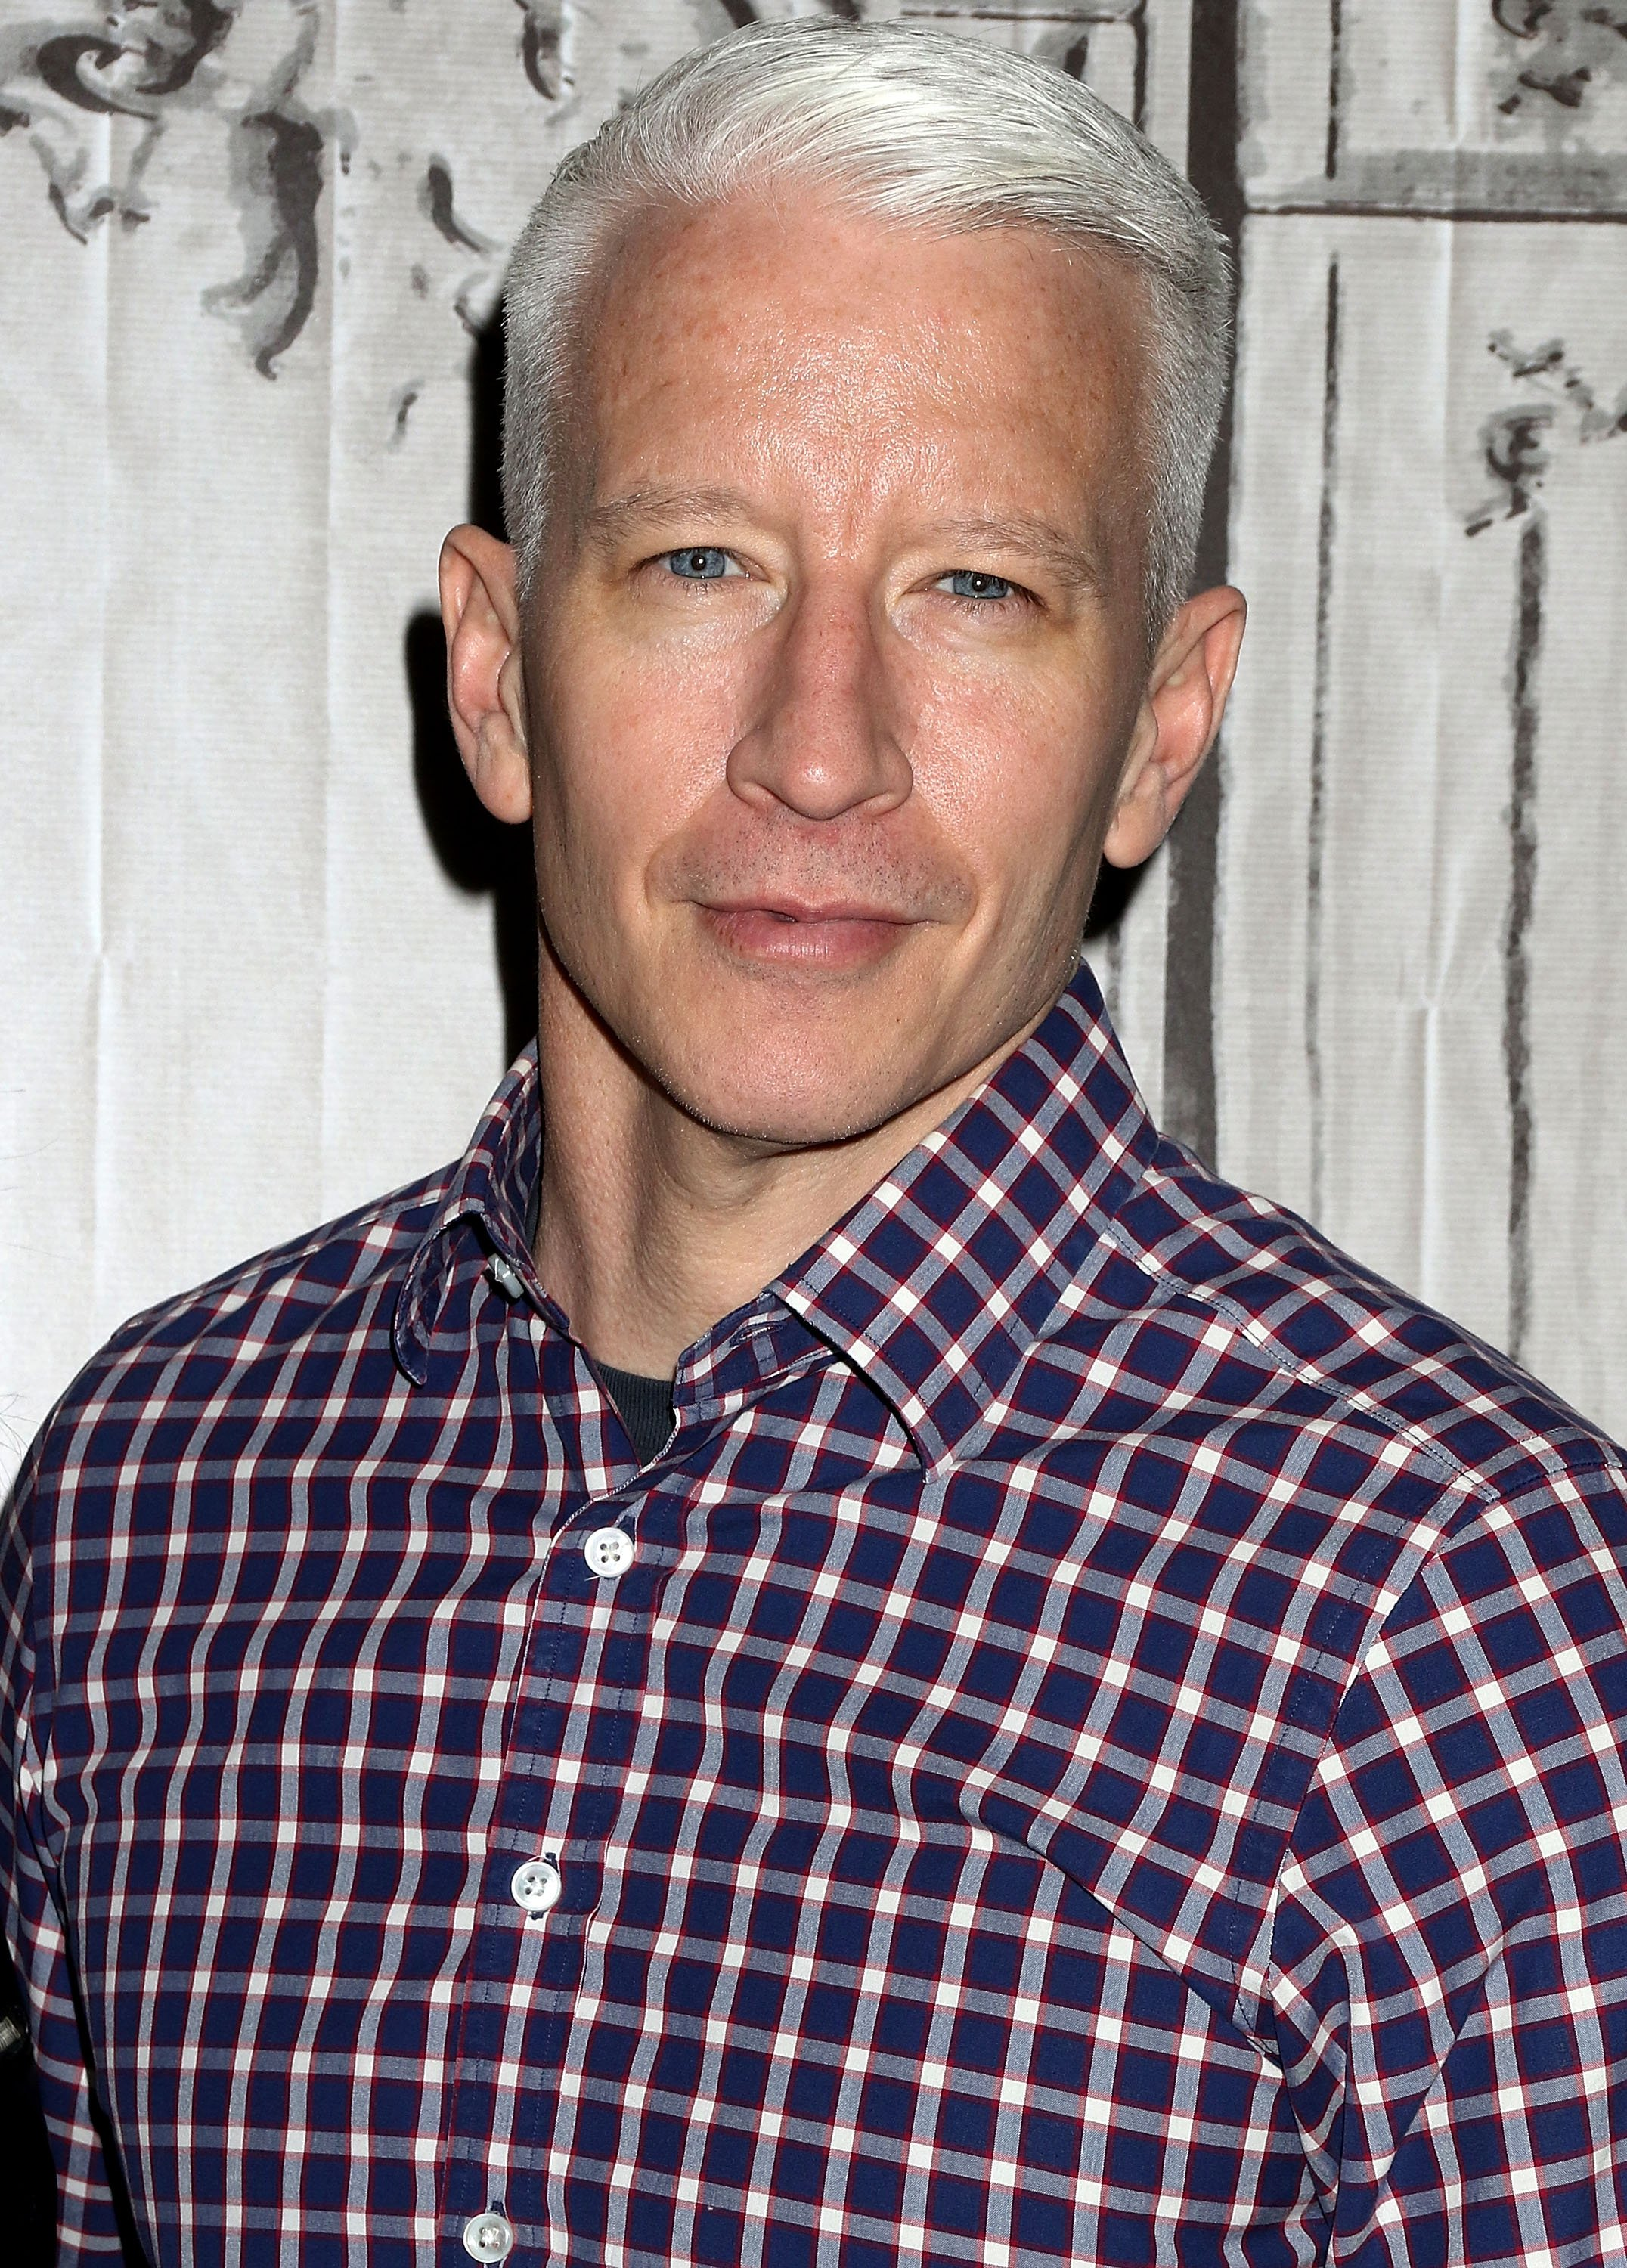 """Anderson Cooper attends AOL Build Speaker Series to discuss """"Nothing Left Unsaid"""" on April 15, 2016, in New York City. 